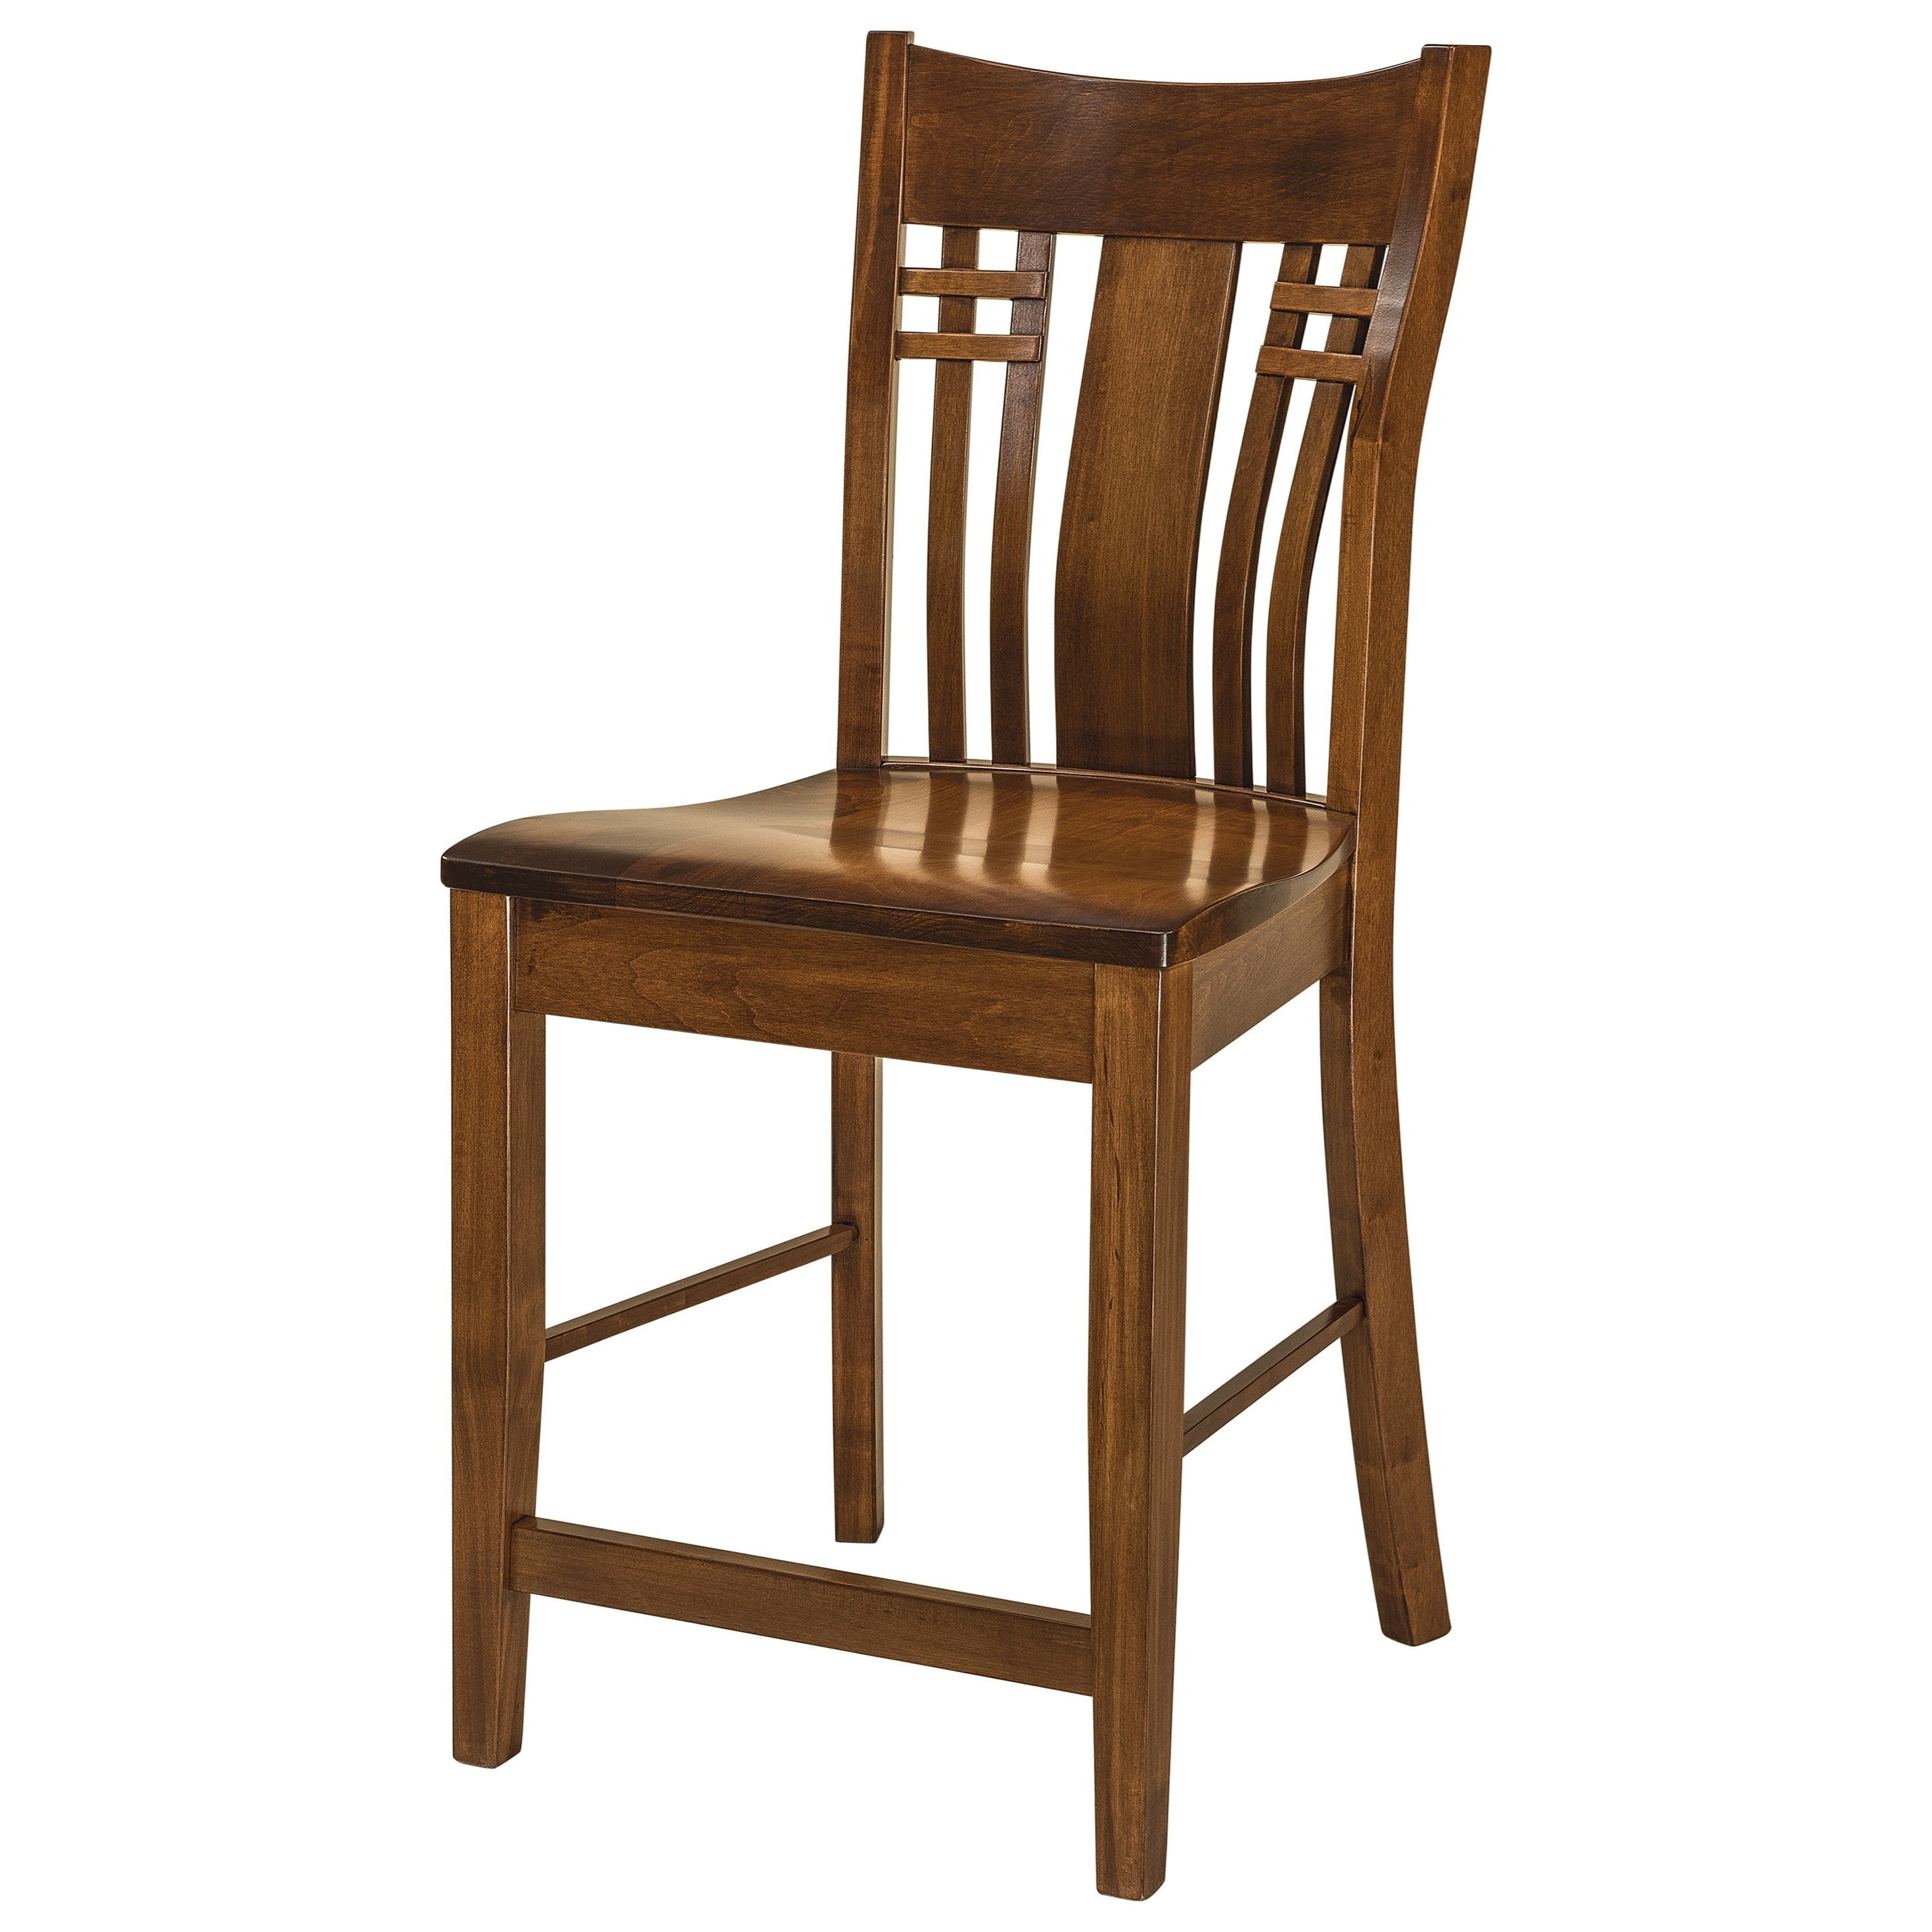 Bennet Stationary Bar Stool - Leather Seat by F&N Woodworking at Mueller Furniture